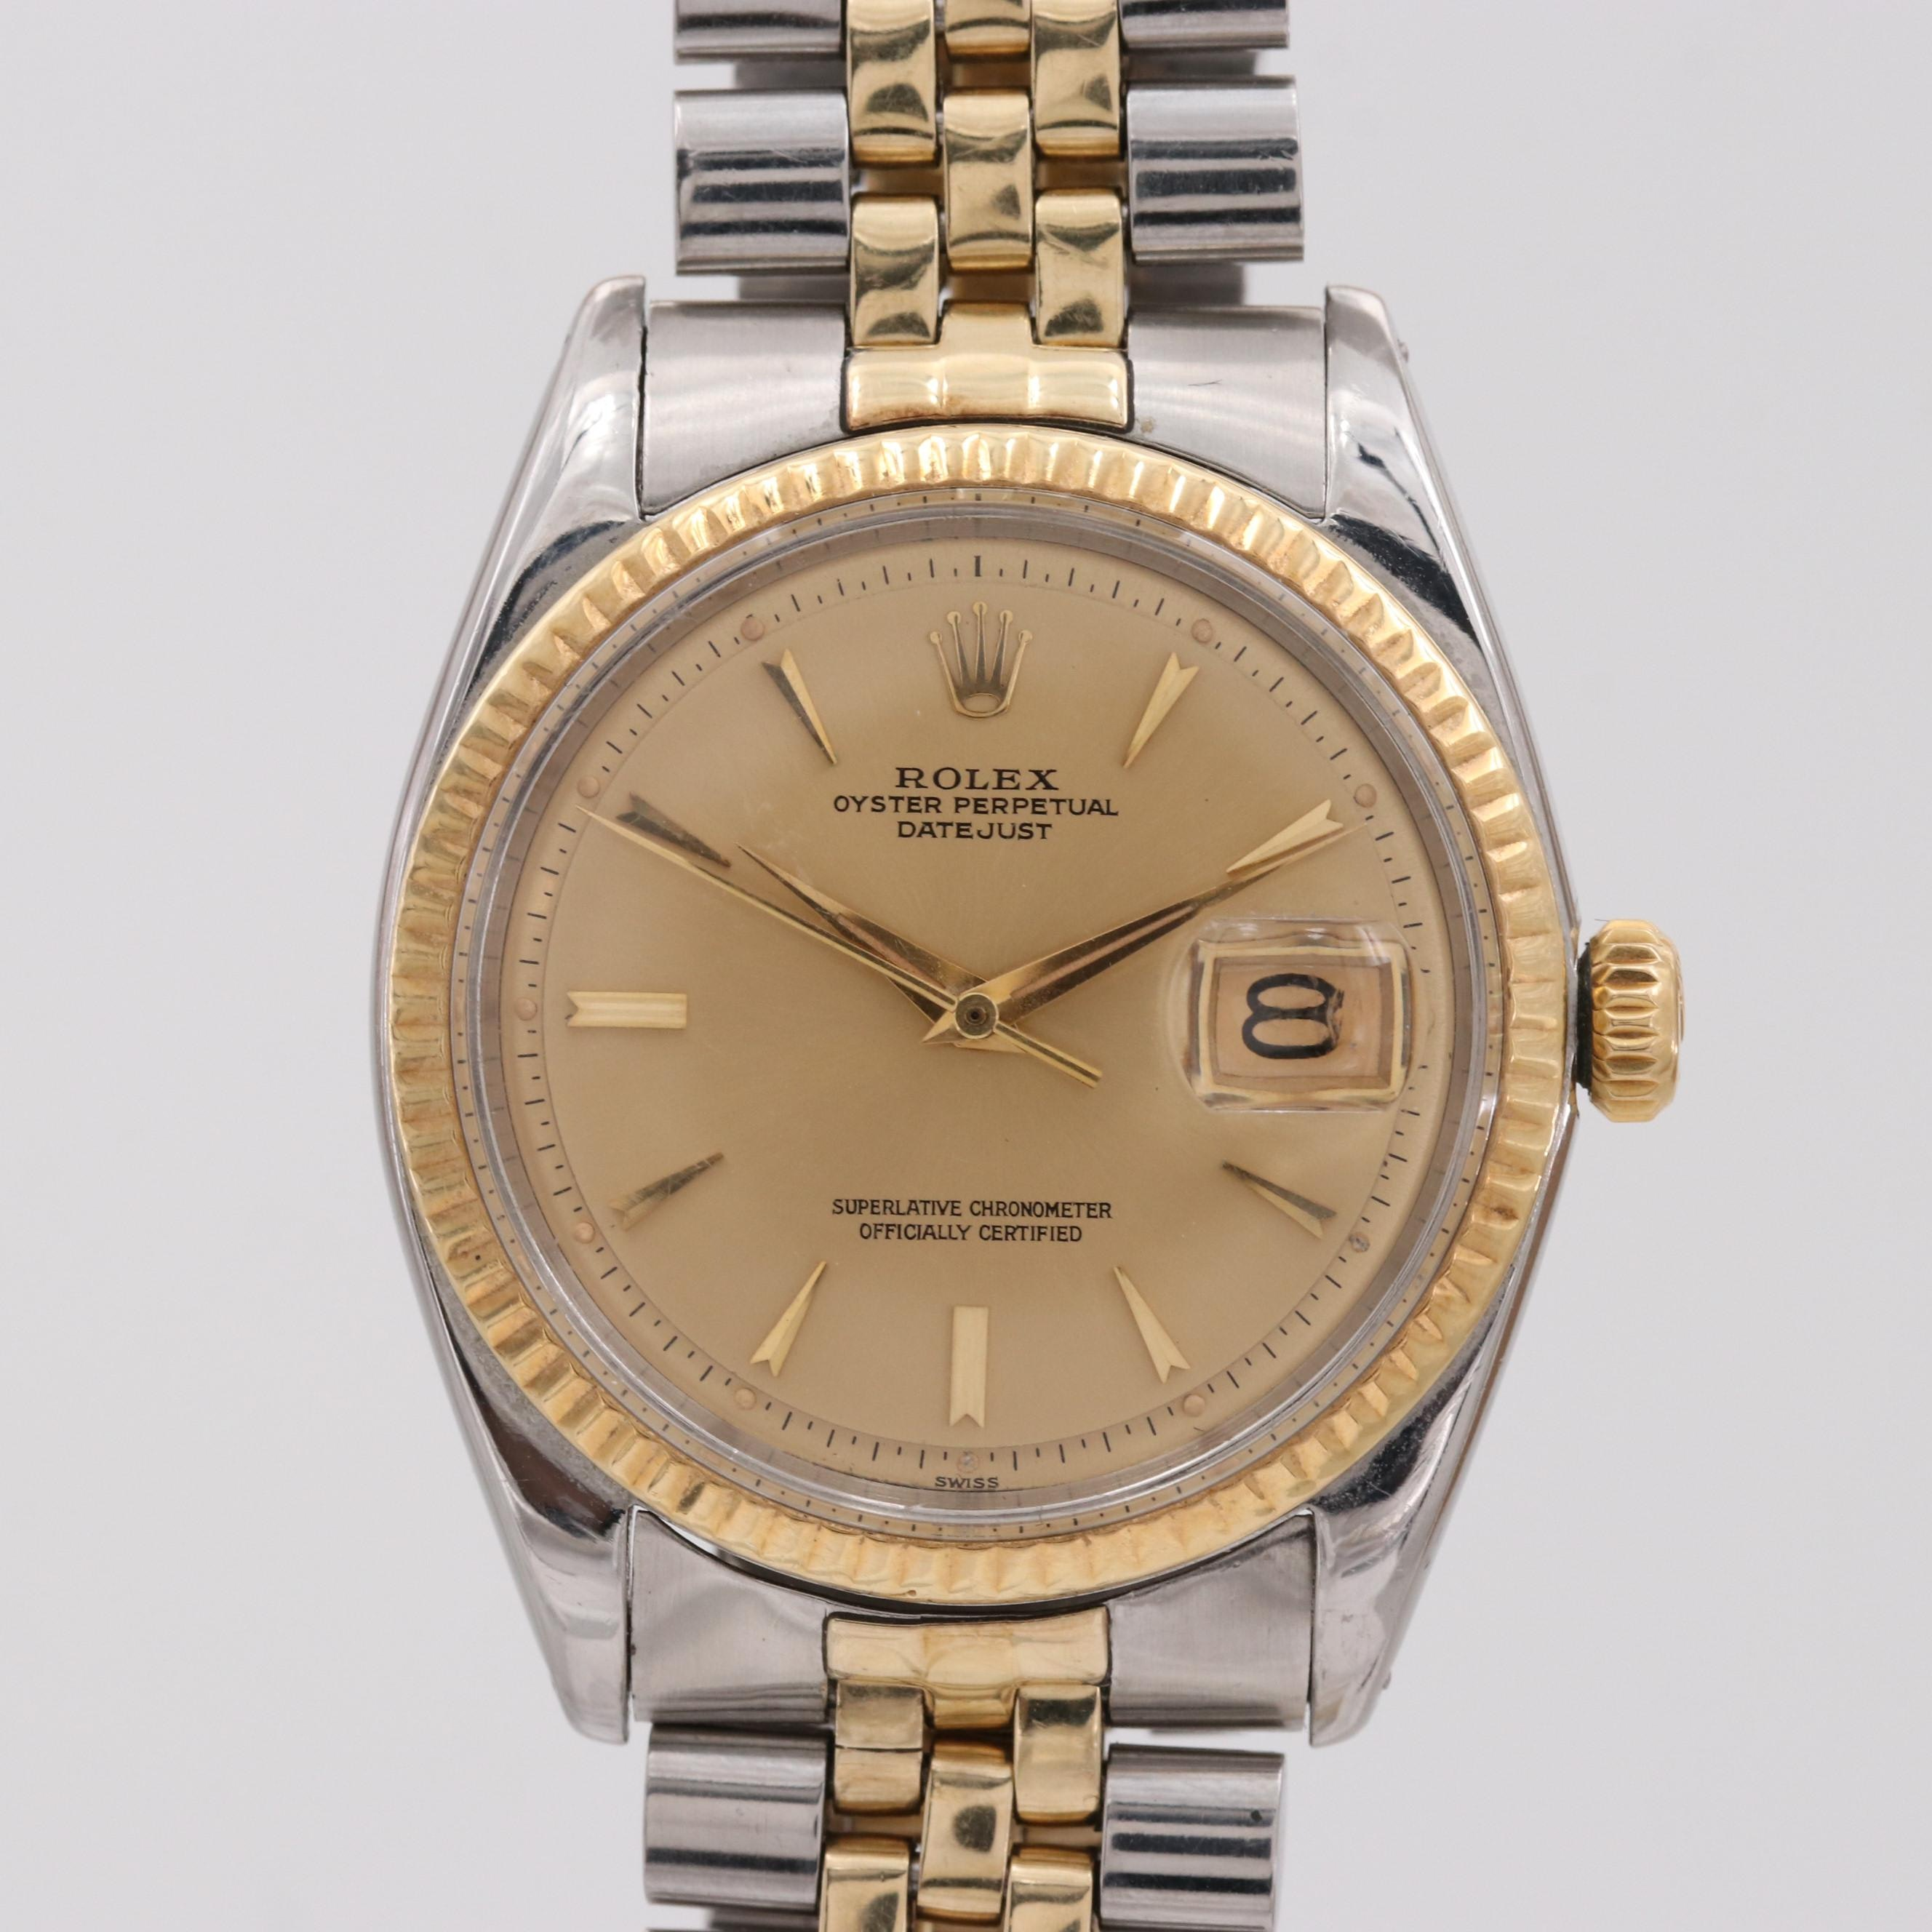 Rolex Datejust Stainless Steel and 14K Yellow Gold Wristwatch, 1961